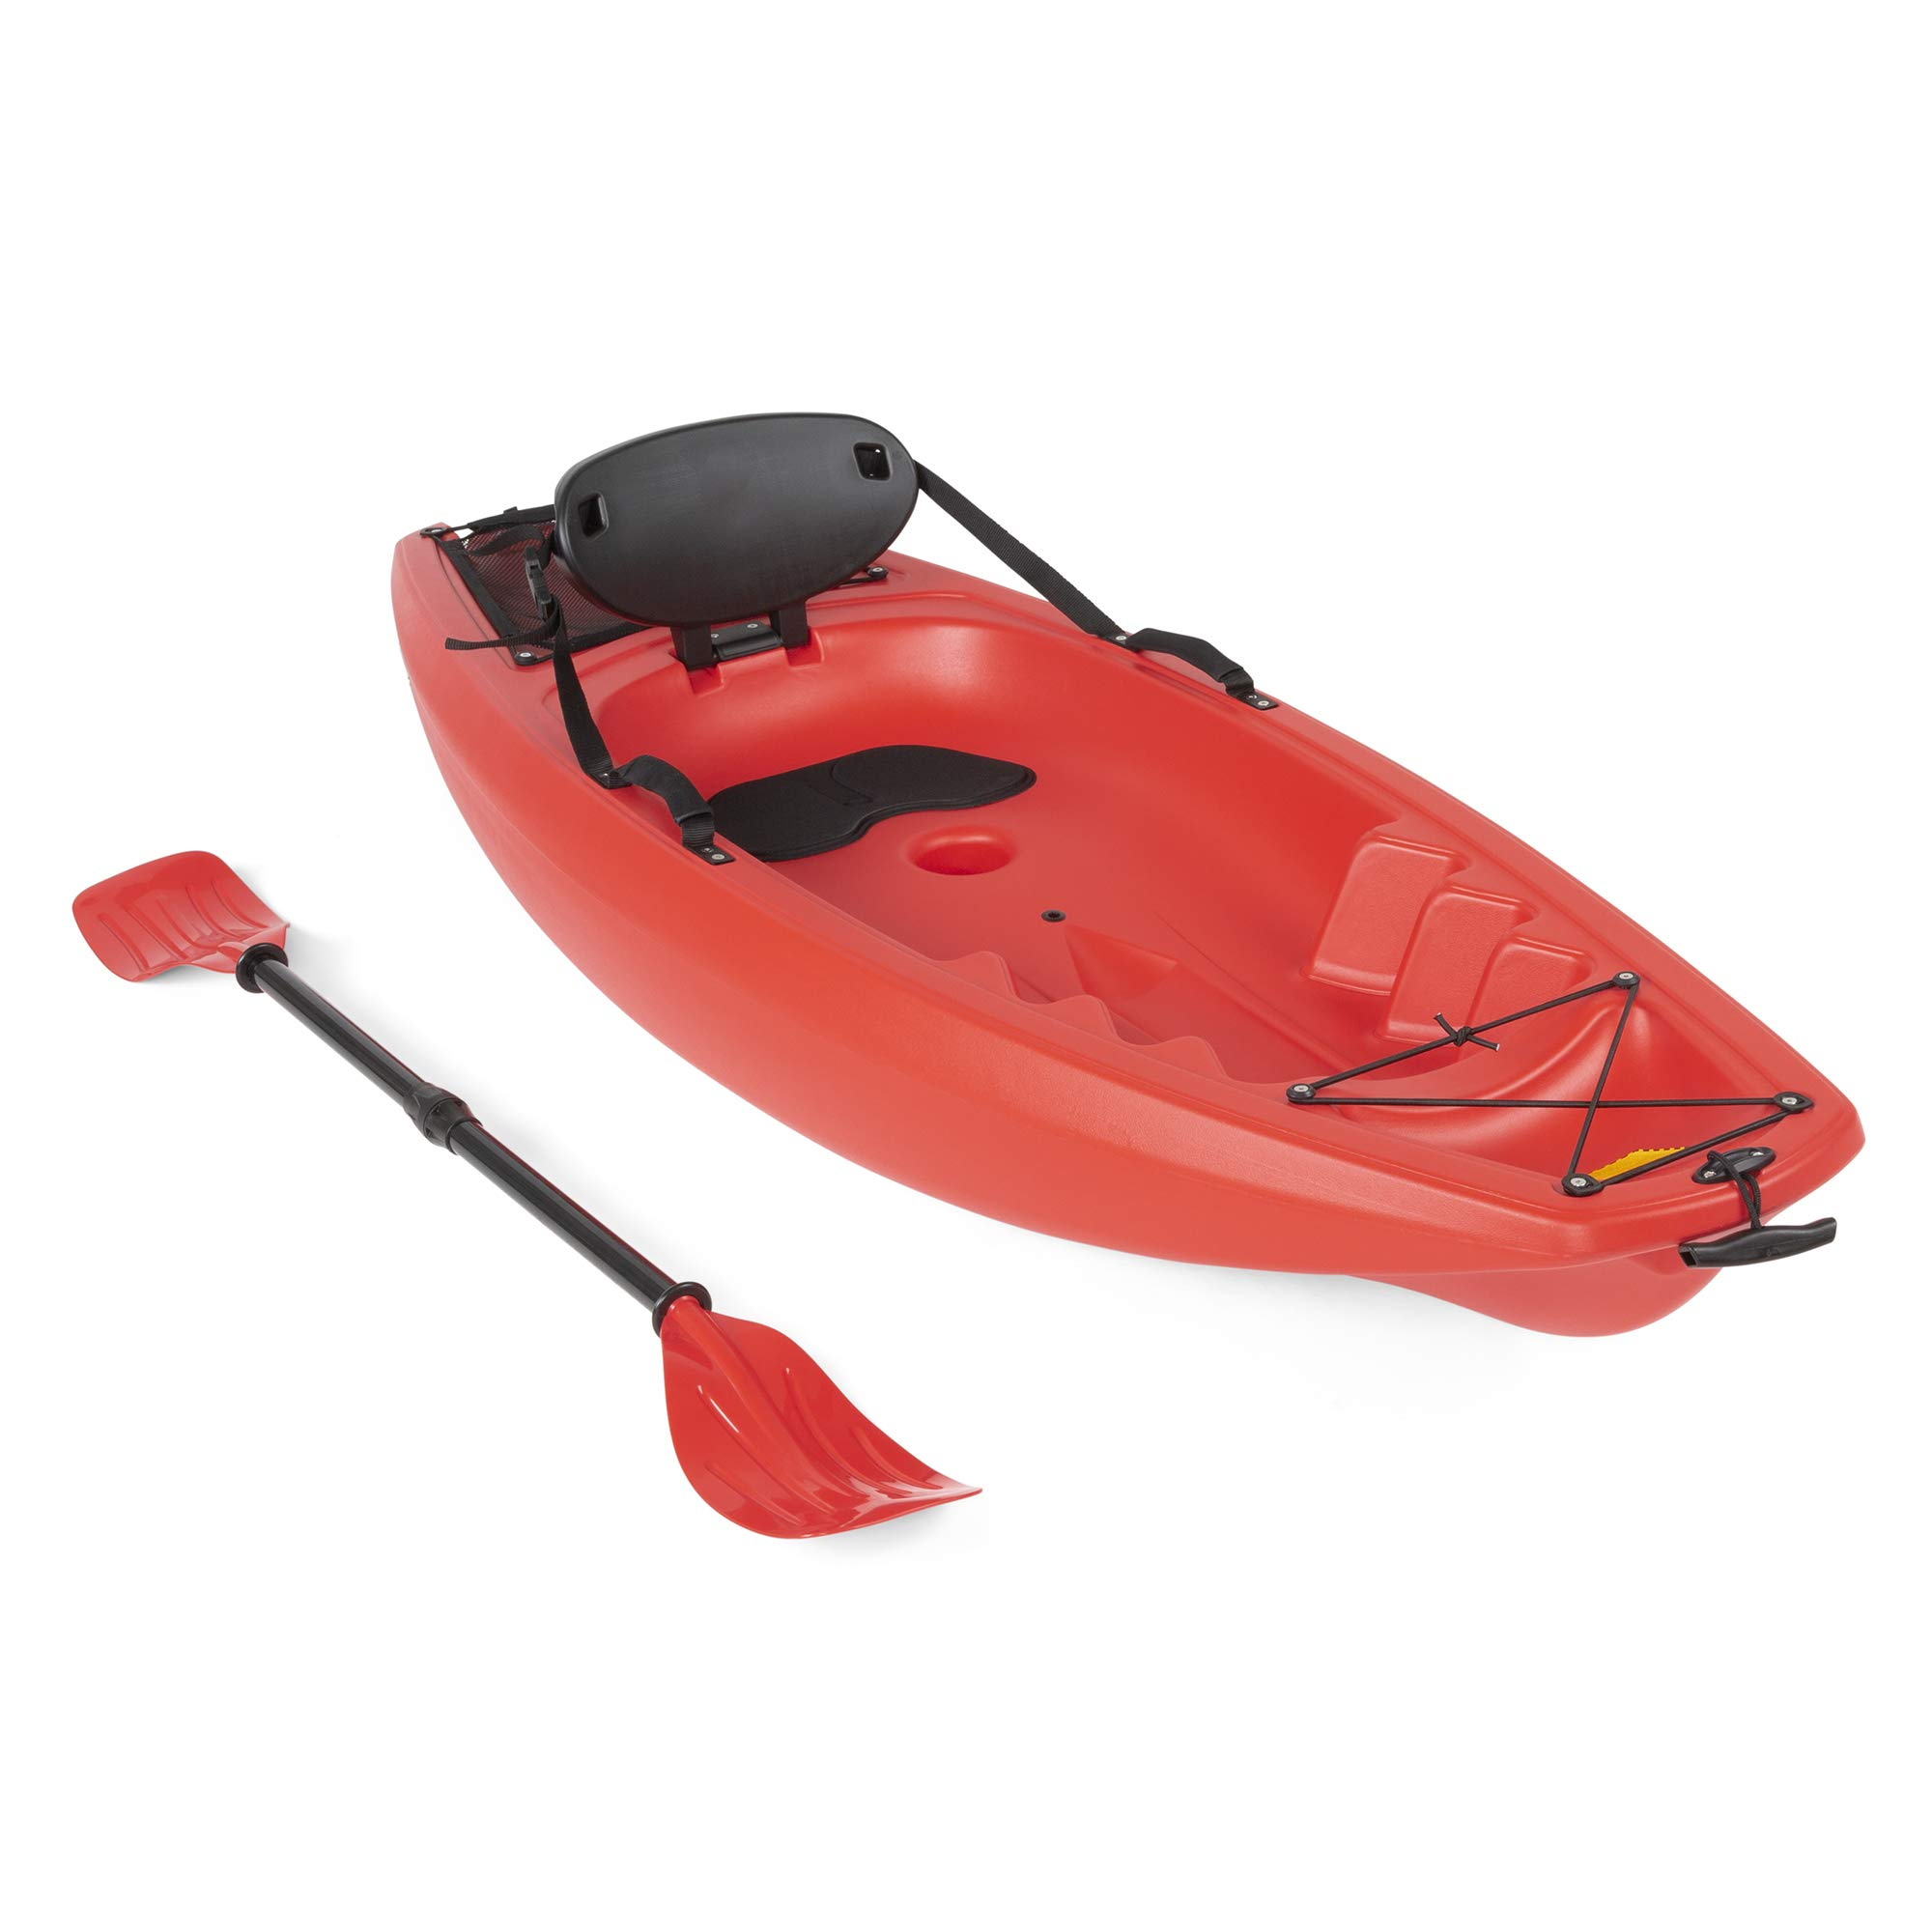 Best Choice Products Kayak with Paddle - Red, 6ft by Best Choice Products